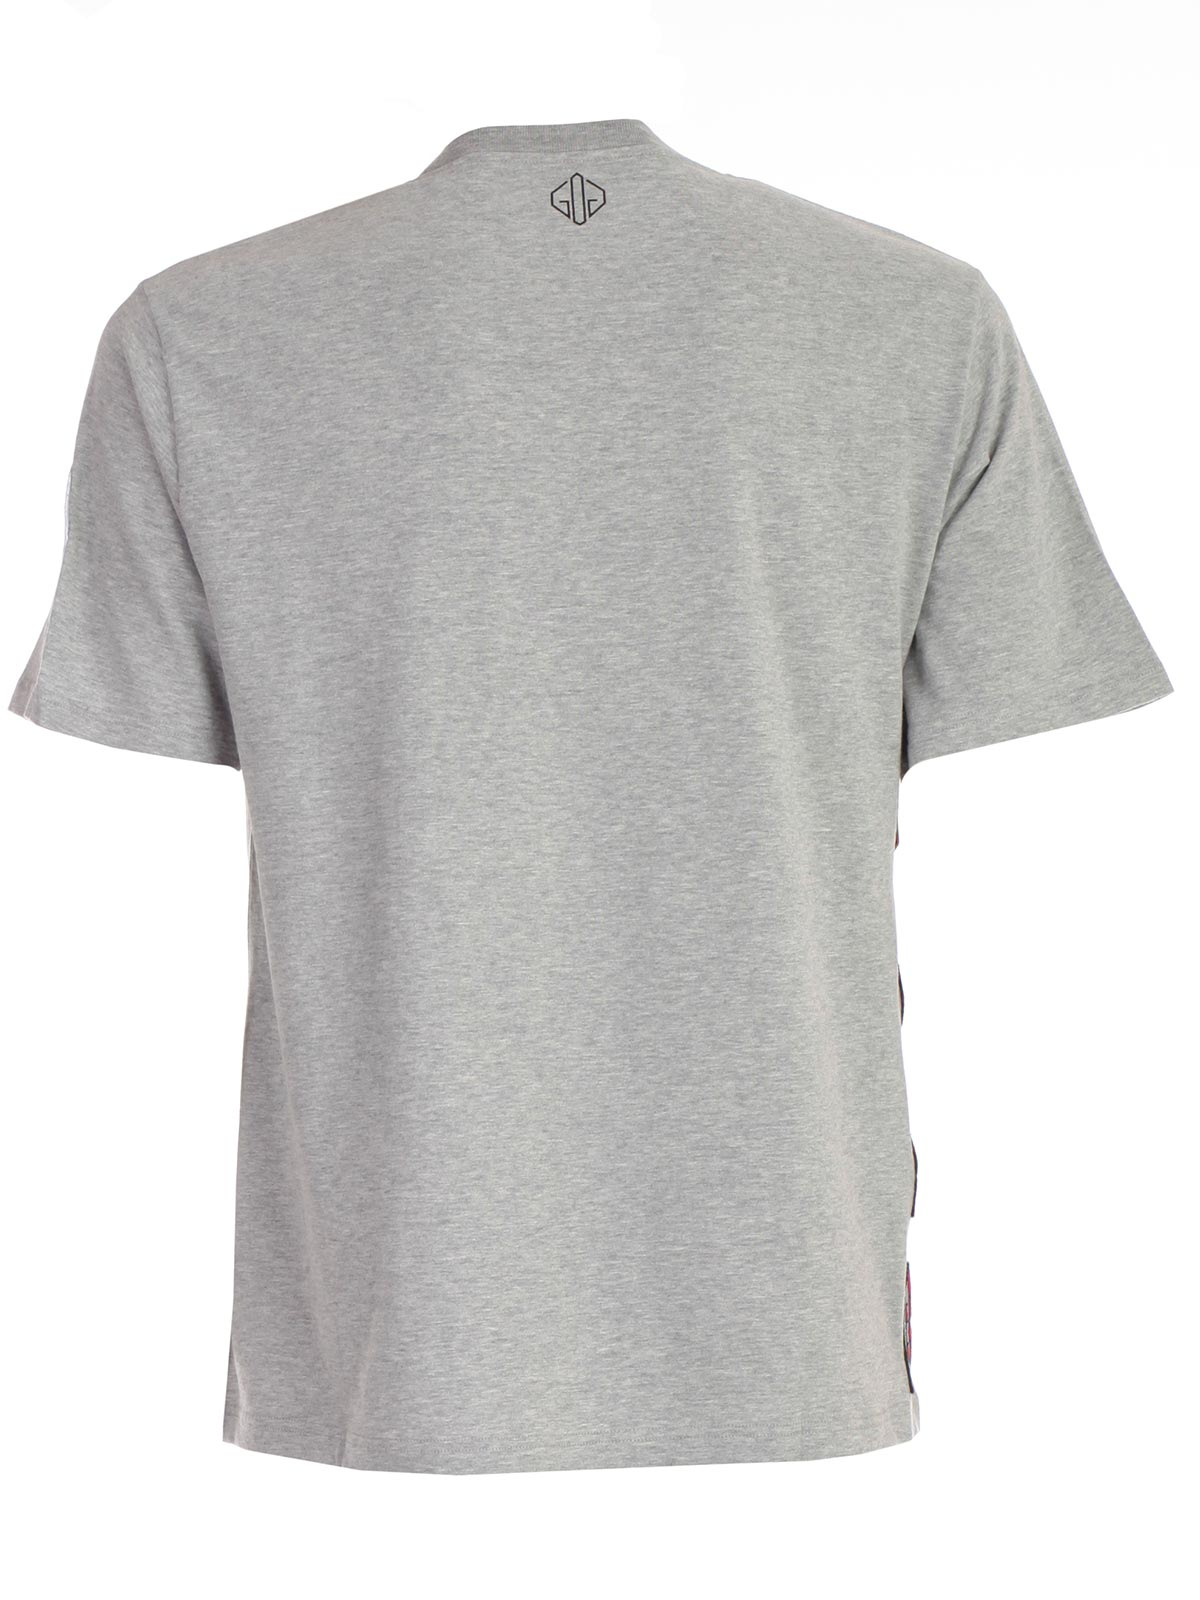 Picture of Golden Goose Deluxe Brand T- Shirt